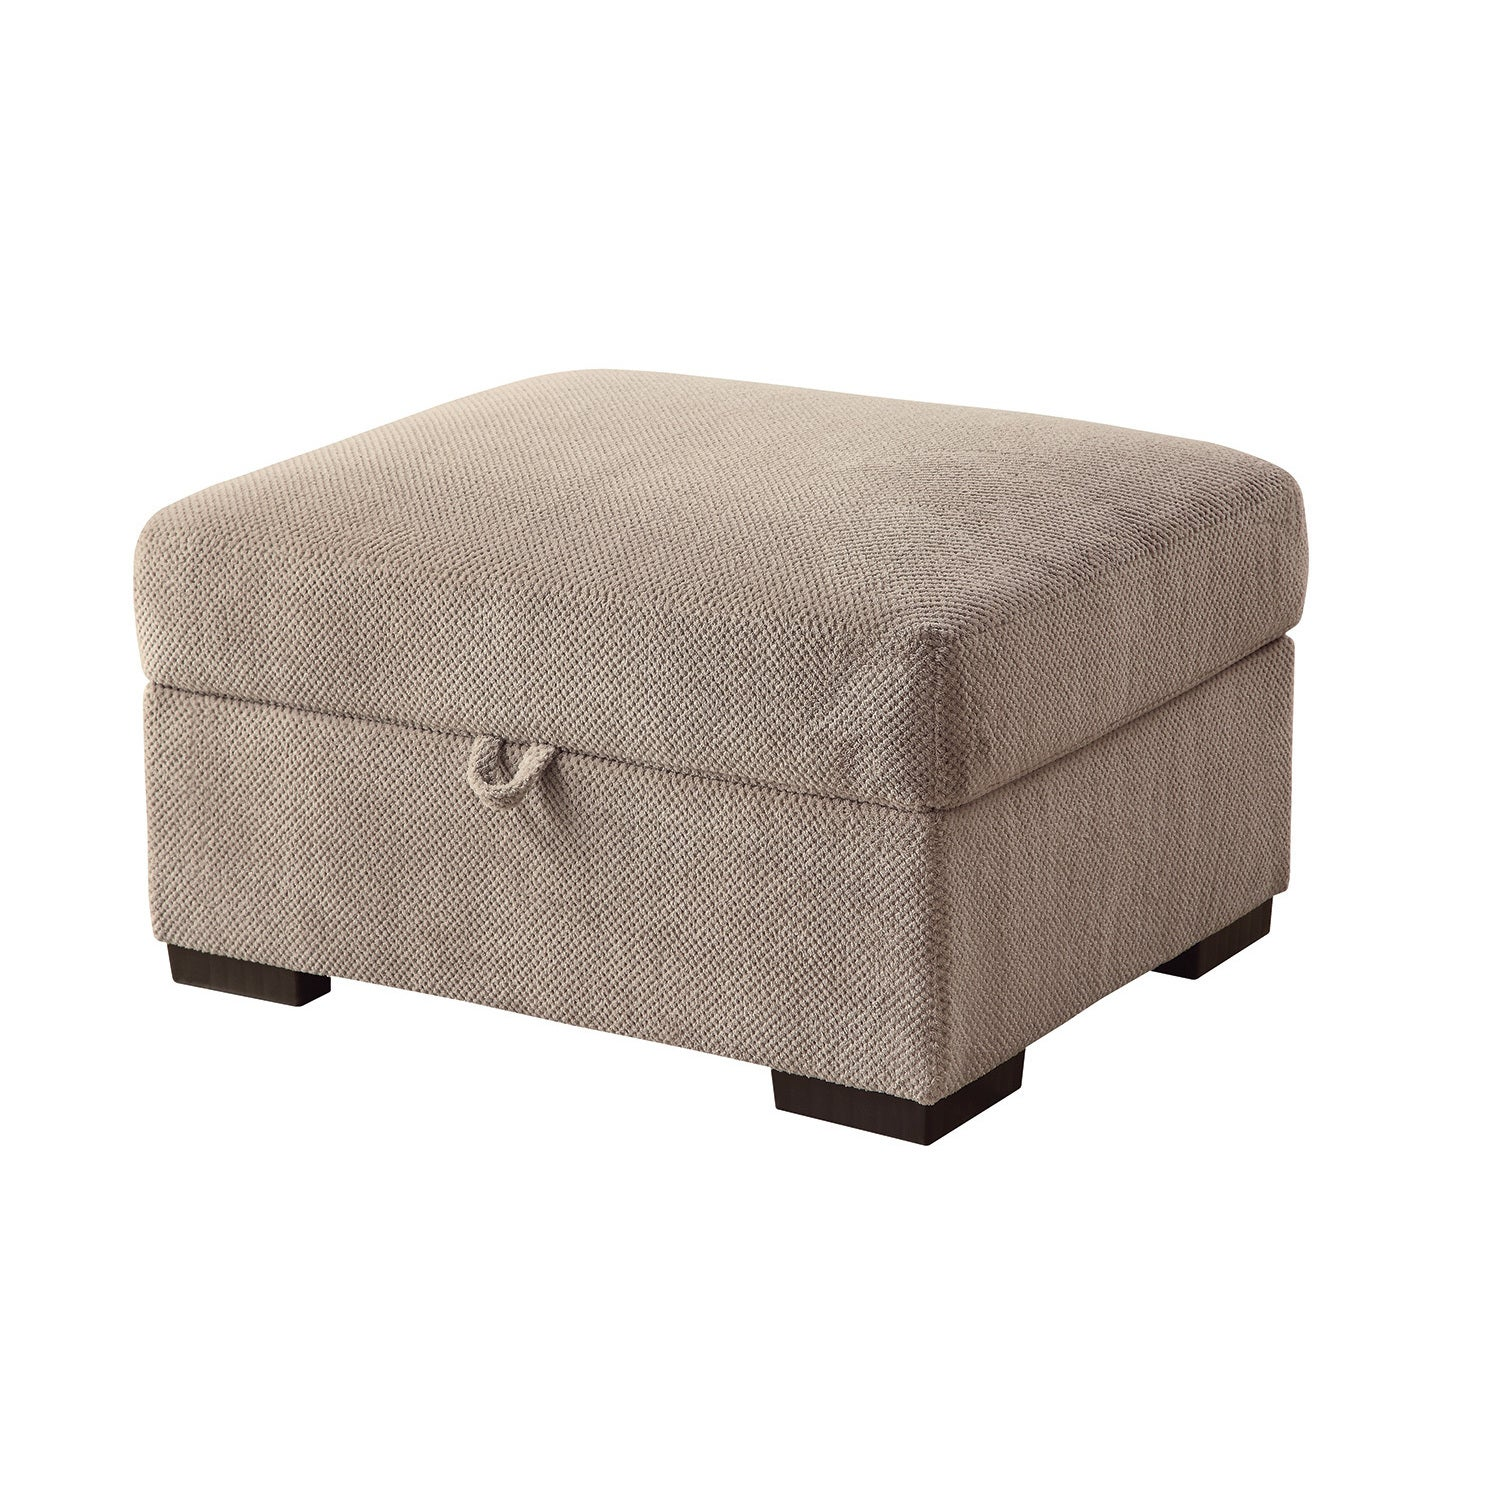 Coaster Furniture Microfiber Lift-top Storage Ottoman (Ta...